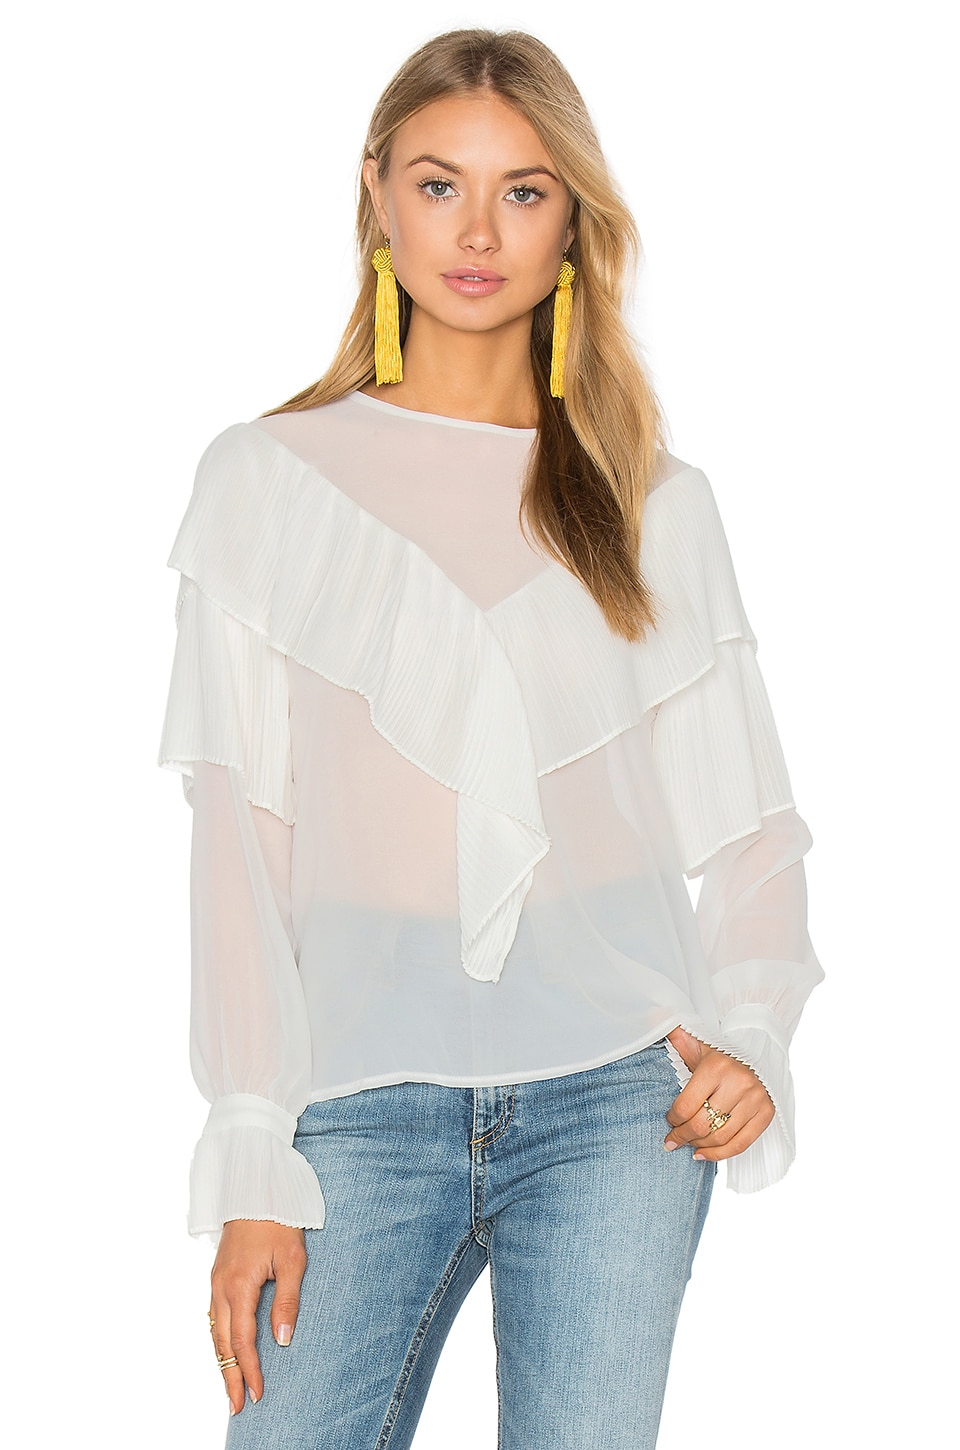 Ruffle Blouse by Endless Rose